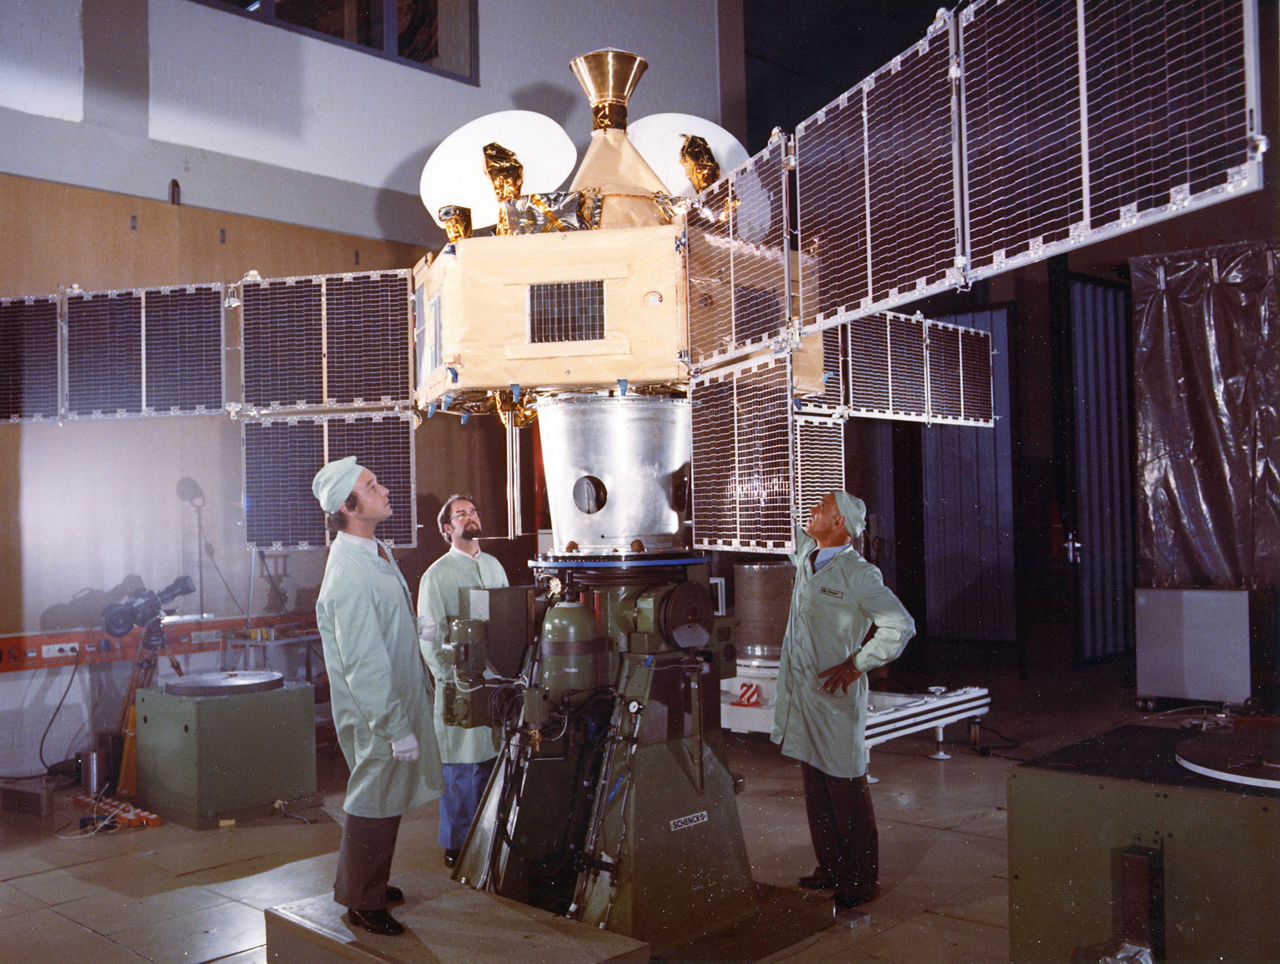 Europe's first communications satellite, Symphonie, is inspected ahead of its 1974 launch on a Delta rocket.